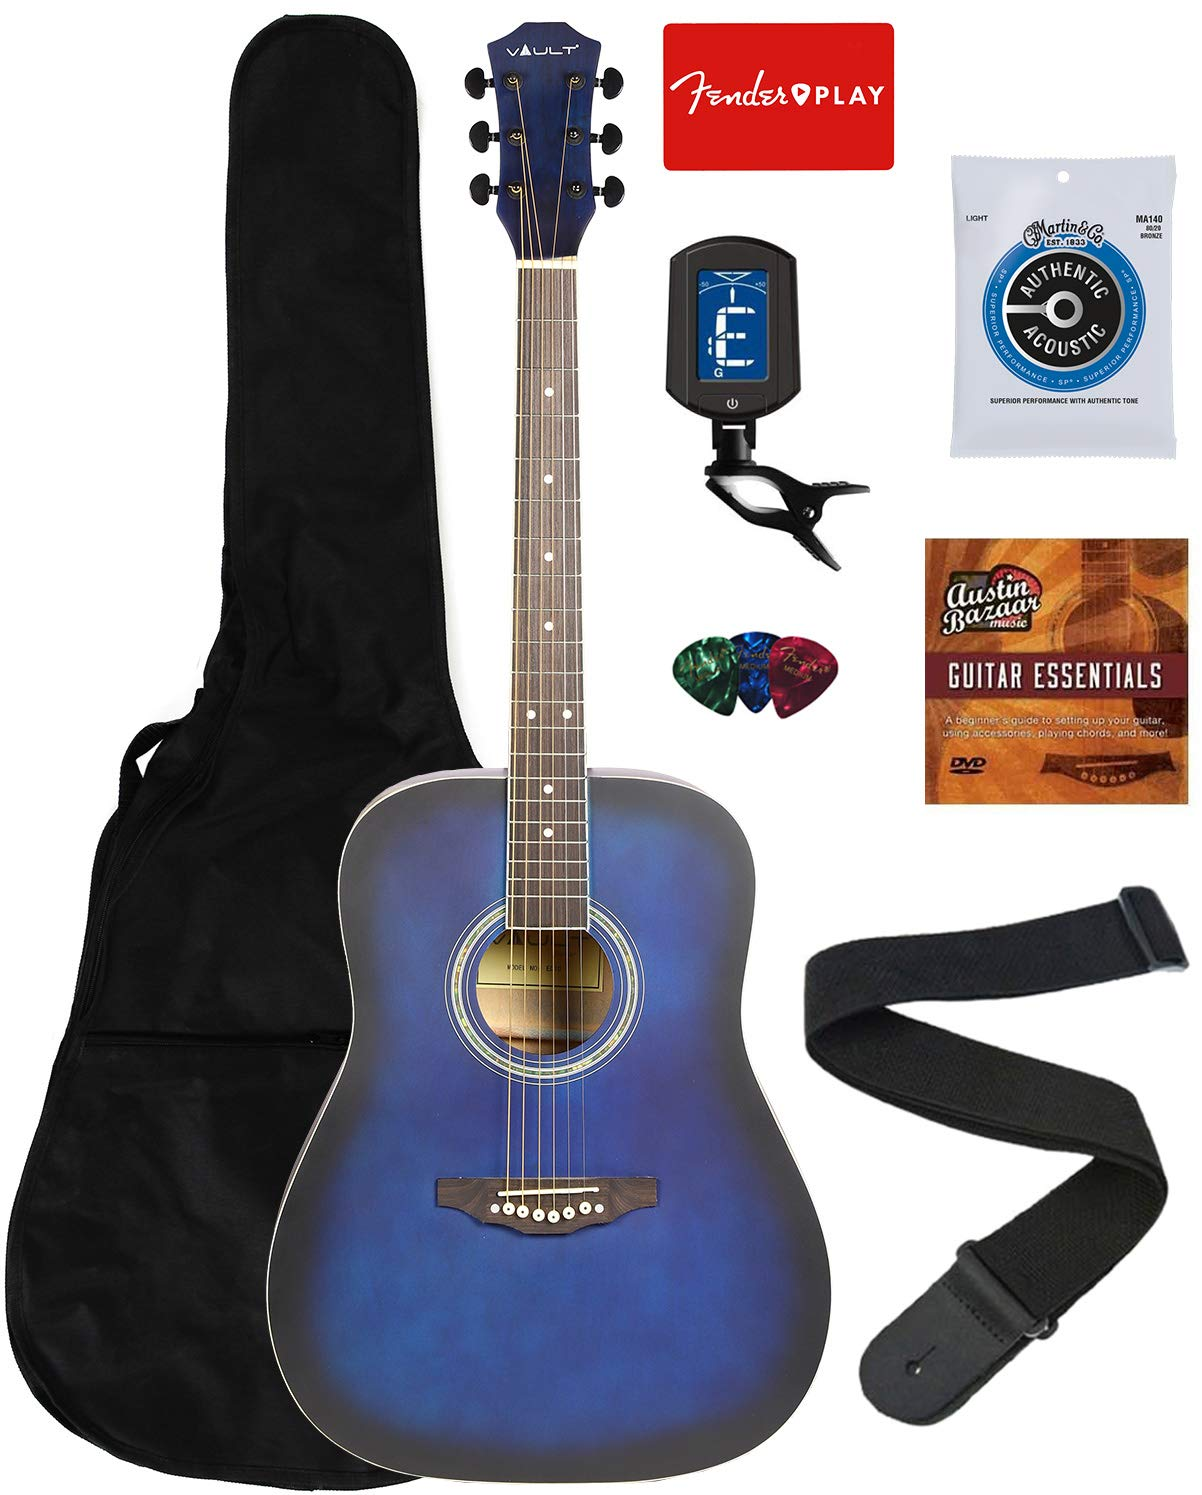 Vault 41-Inch Dreadnought Acoustic Guitar - Blue Bundle with Gig Bag, Tuner, String, Picks, Strap, and Instructional DVD by VAULT